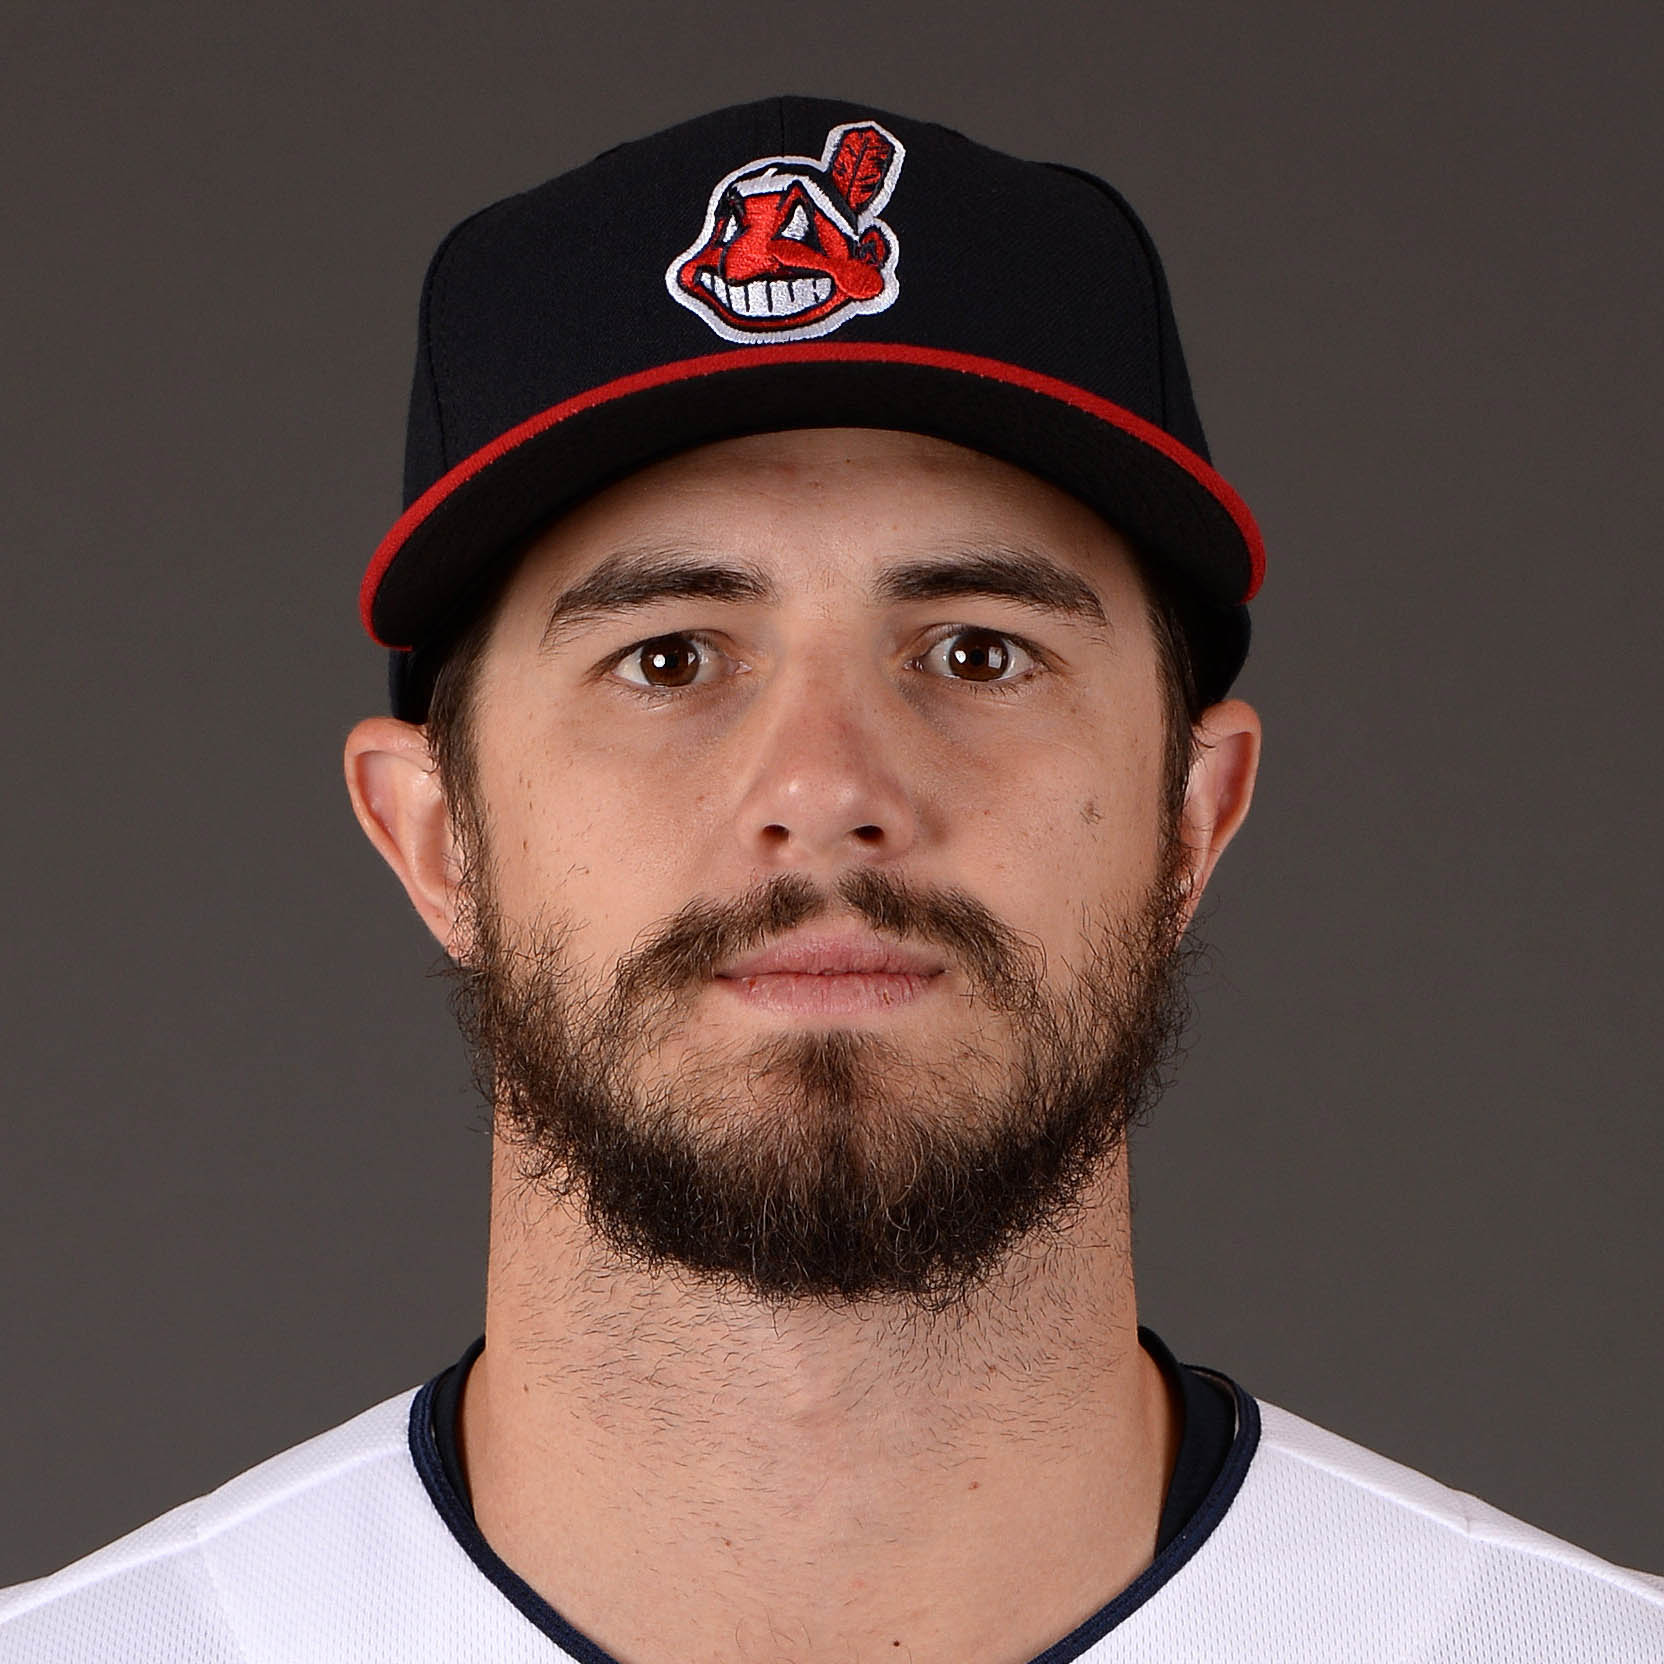 Ryan Merritt Headshot